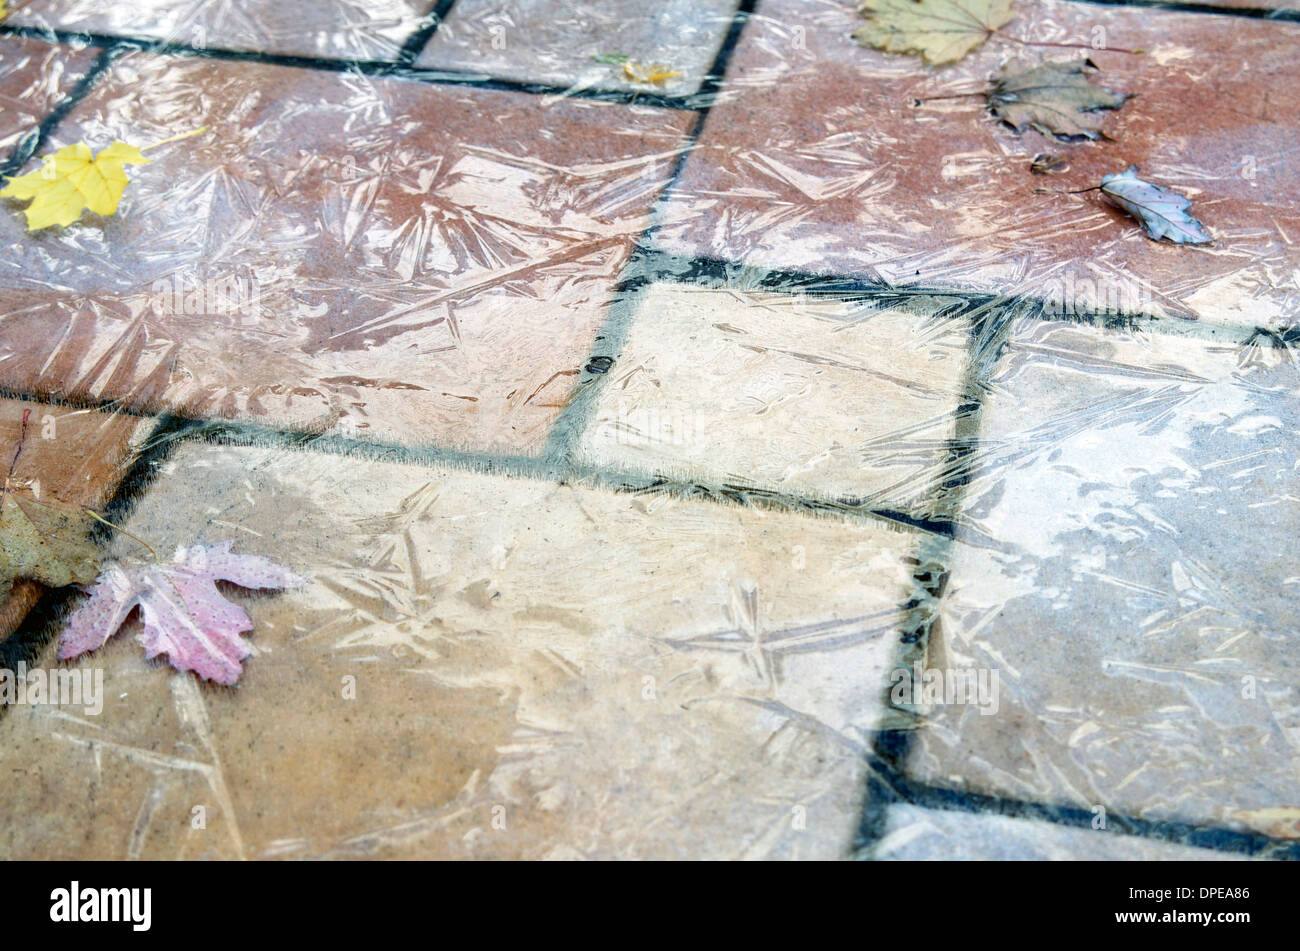 Icy surface outside on ceramic tile. Dangerous - Stock Image